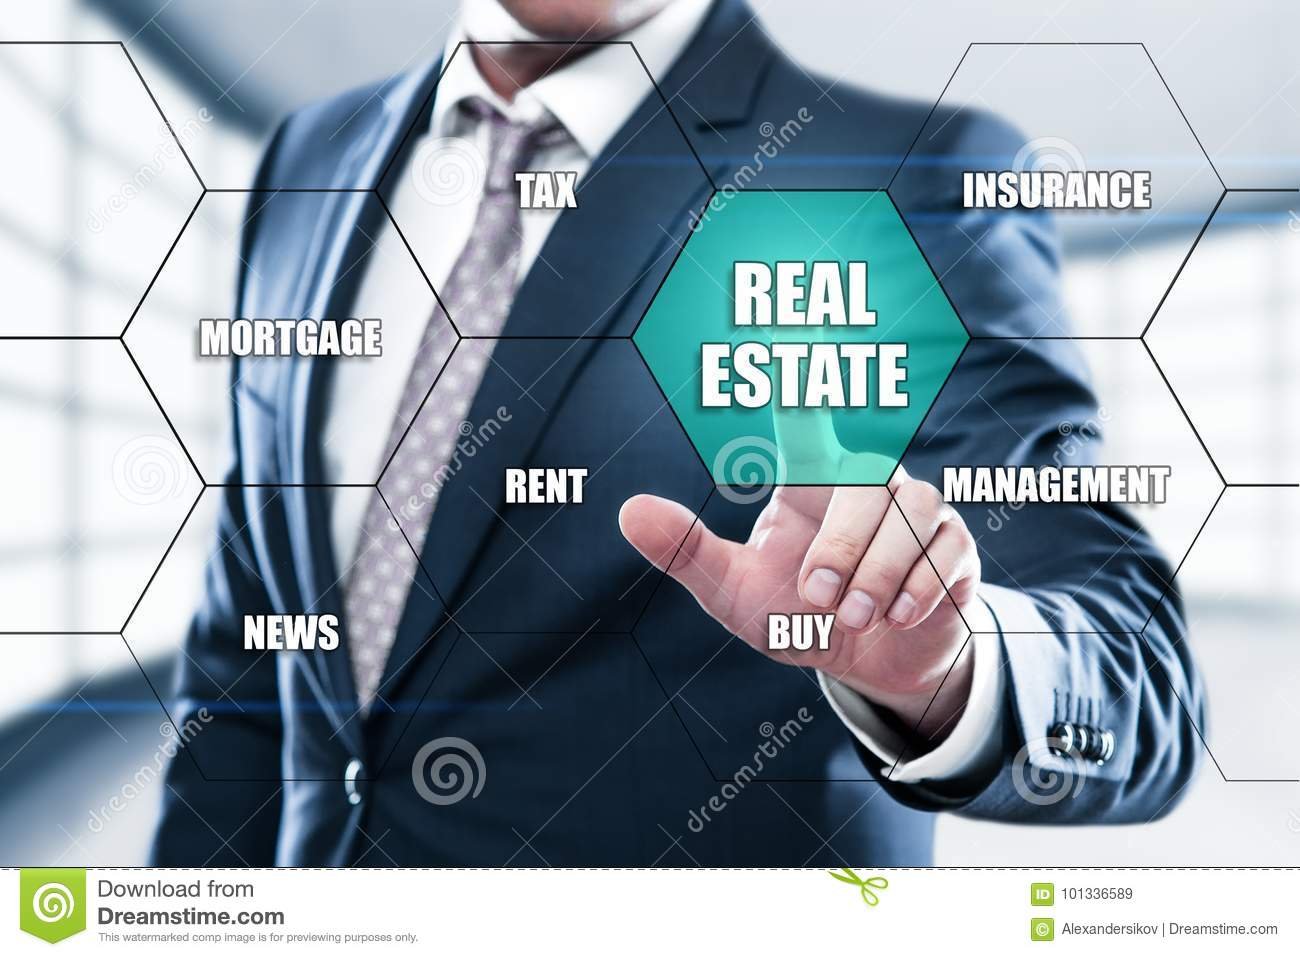 Real Estate Mortgage Property Management Rent Buy Concept